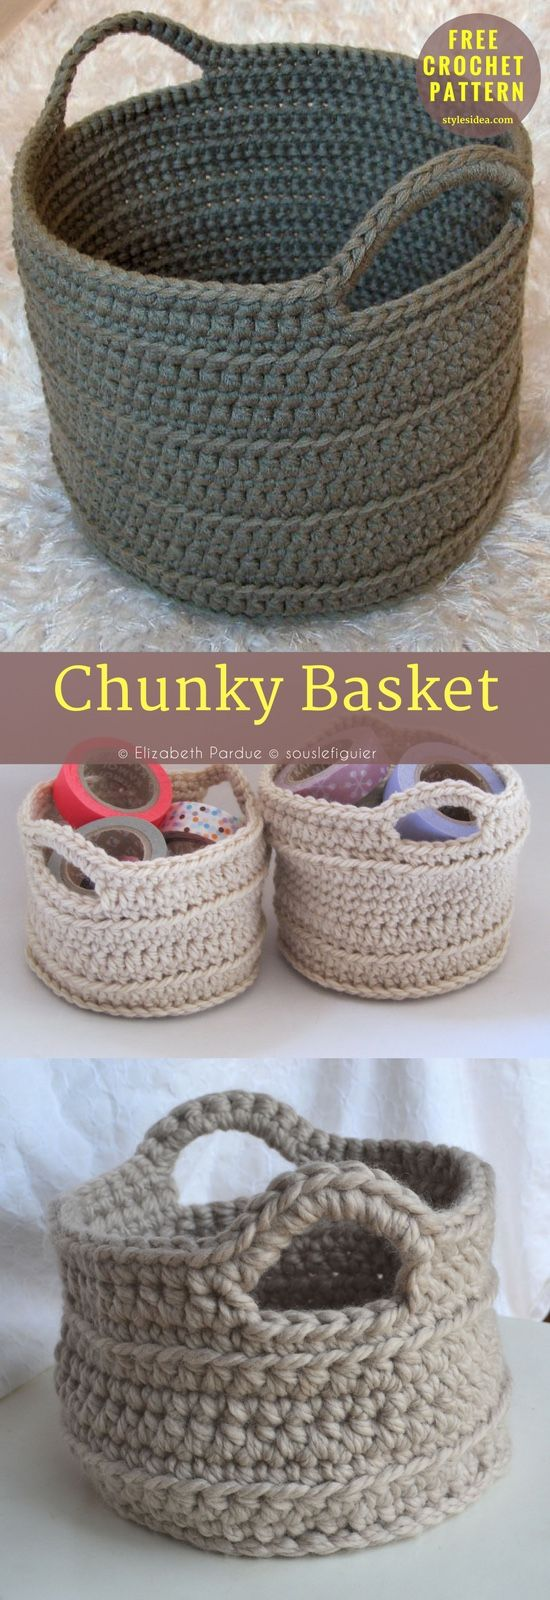 Chunkycrochet Basket Freepattern Containers Measures Approx 32